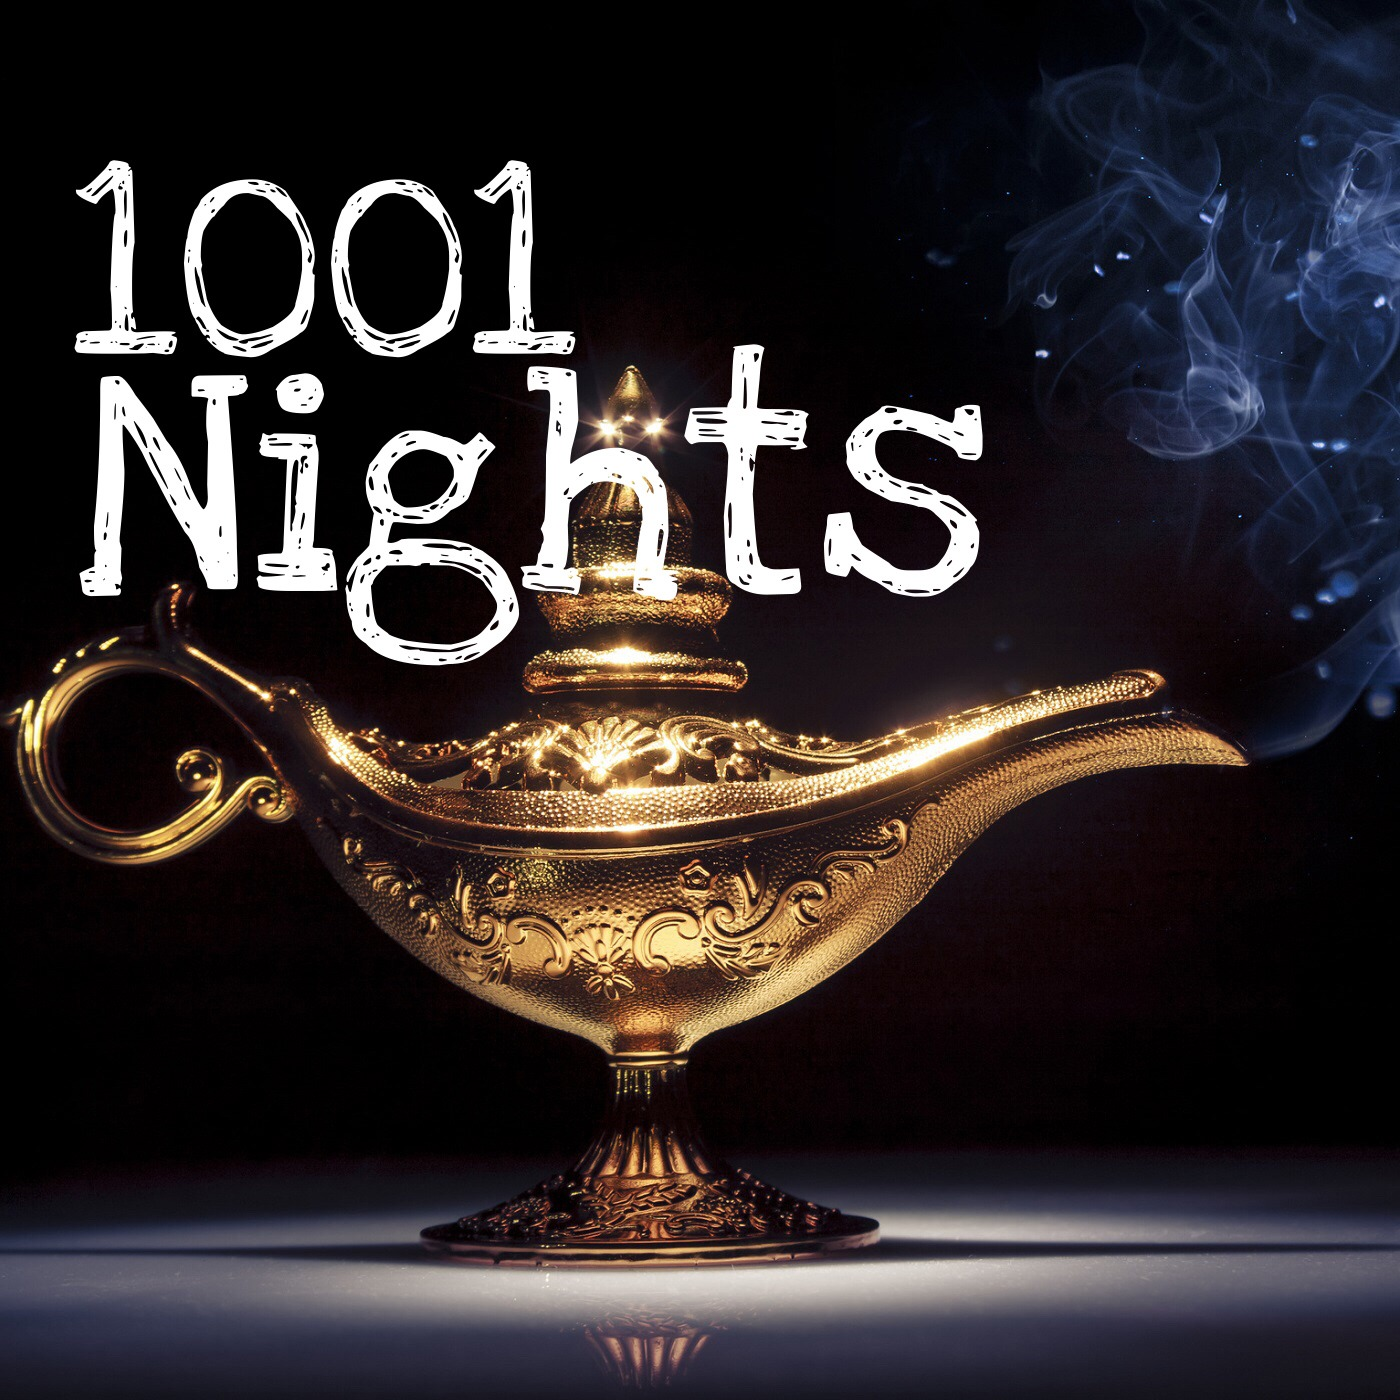 1001 Nights Ep. 1 - Scheherazade and the Sultan